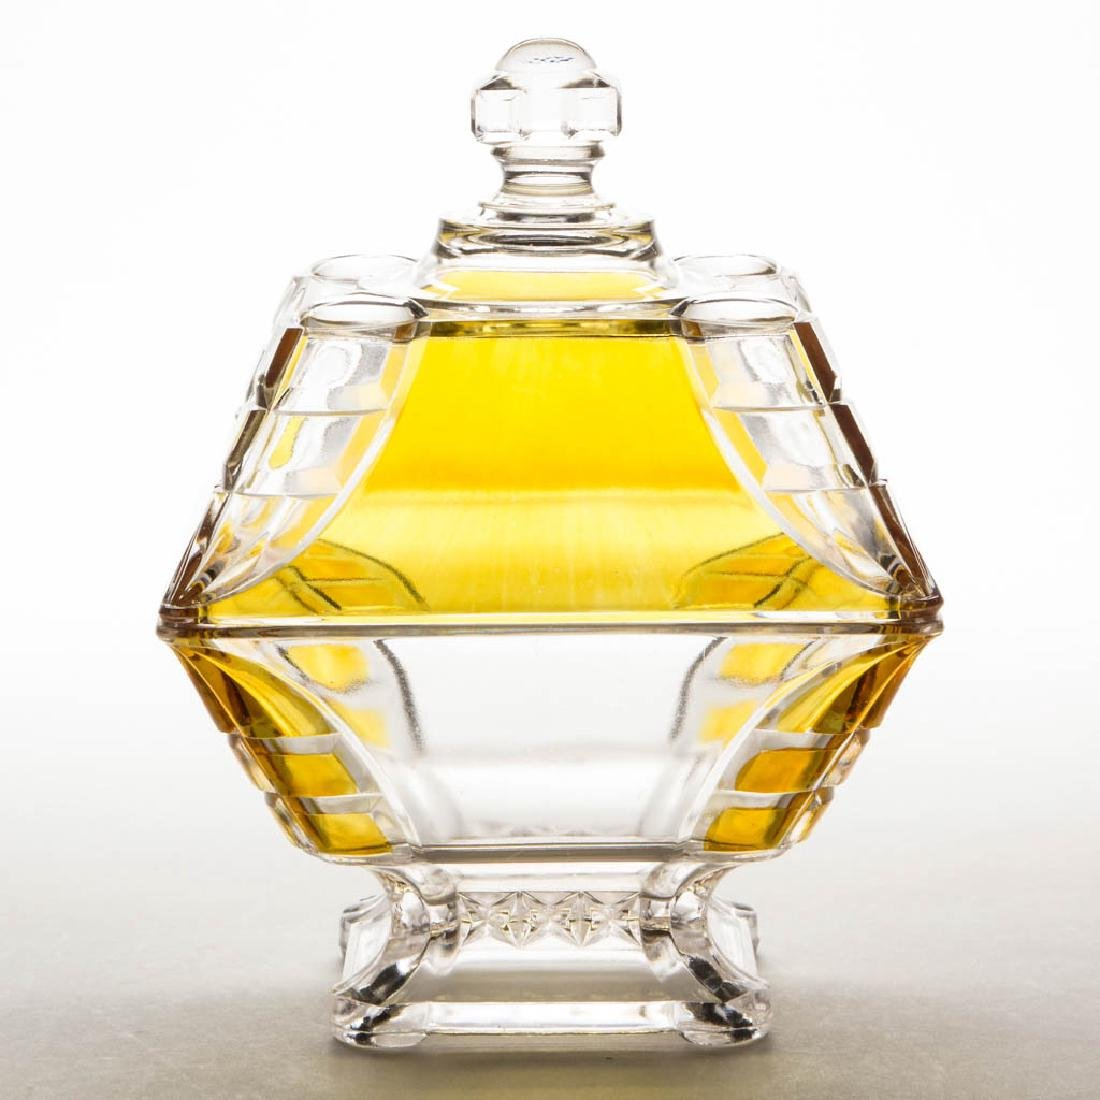 HIDALGO / ADAMS NO. 5 - AMBER-STAINED COVERED COMPOTE